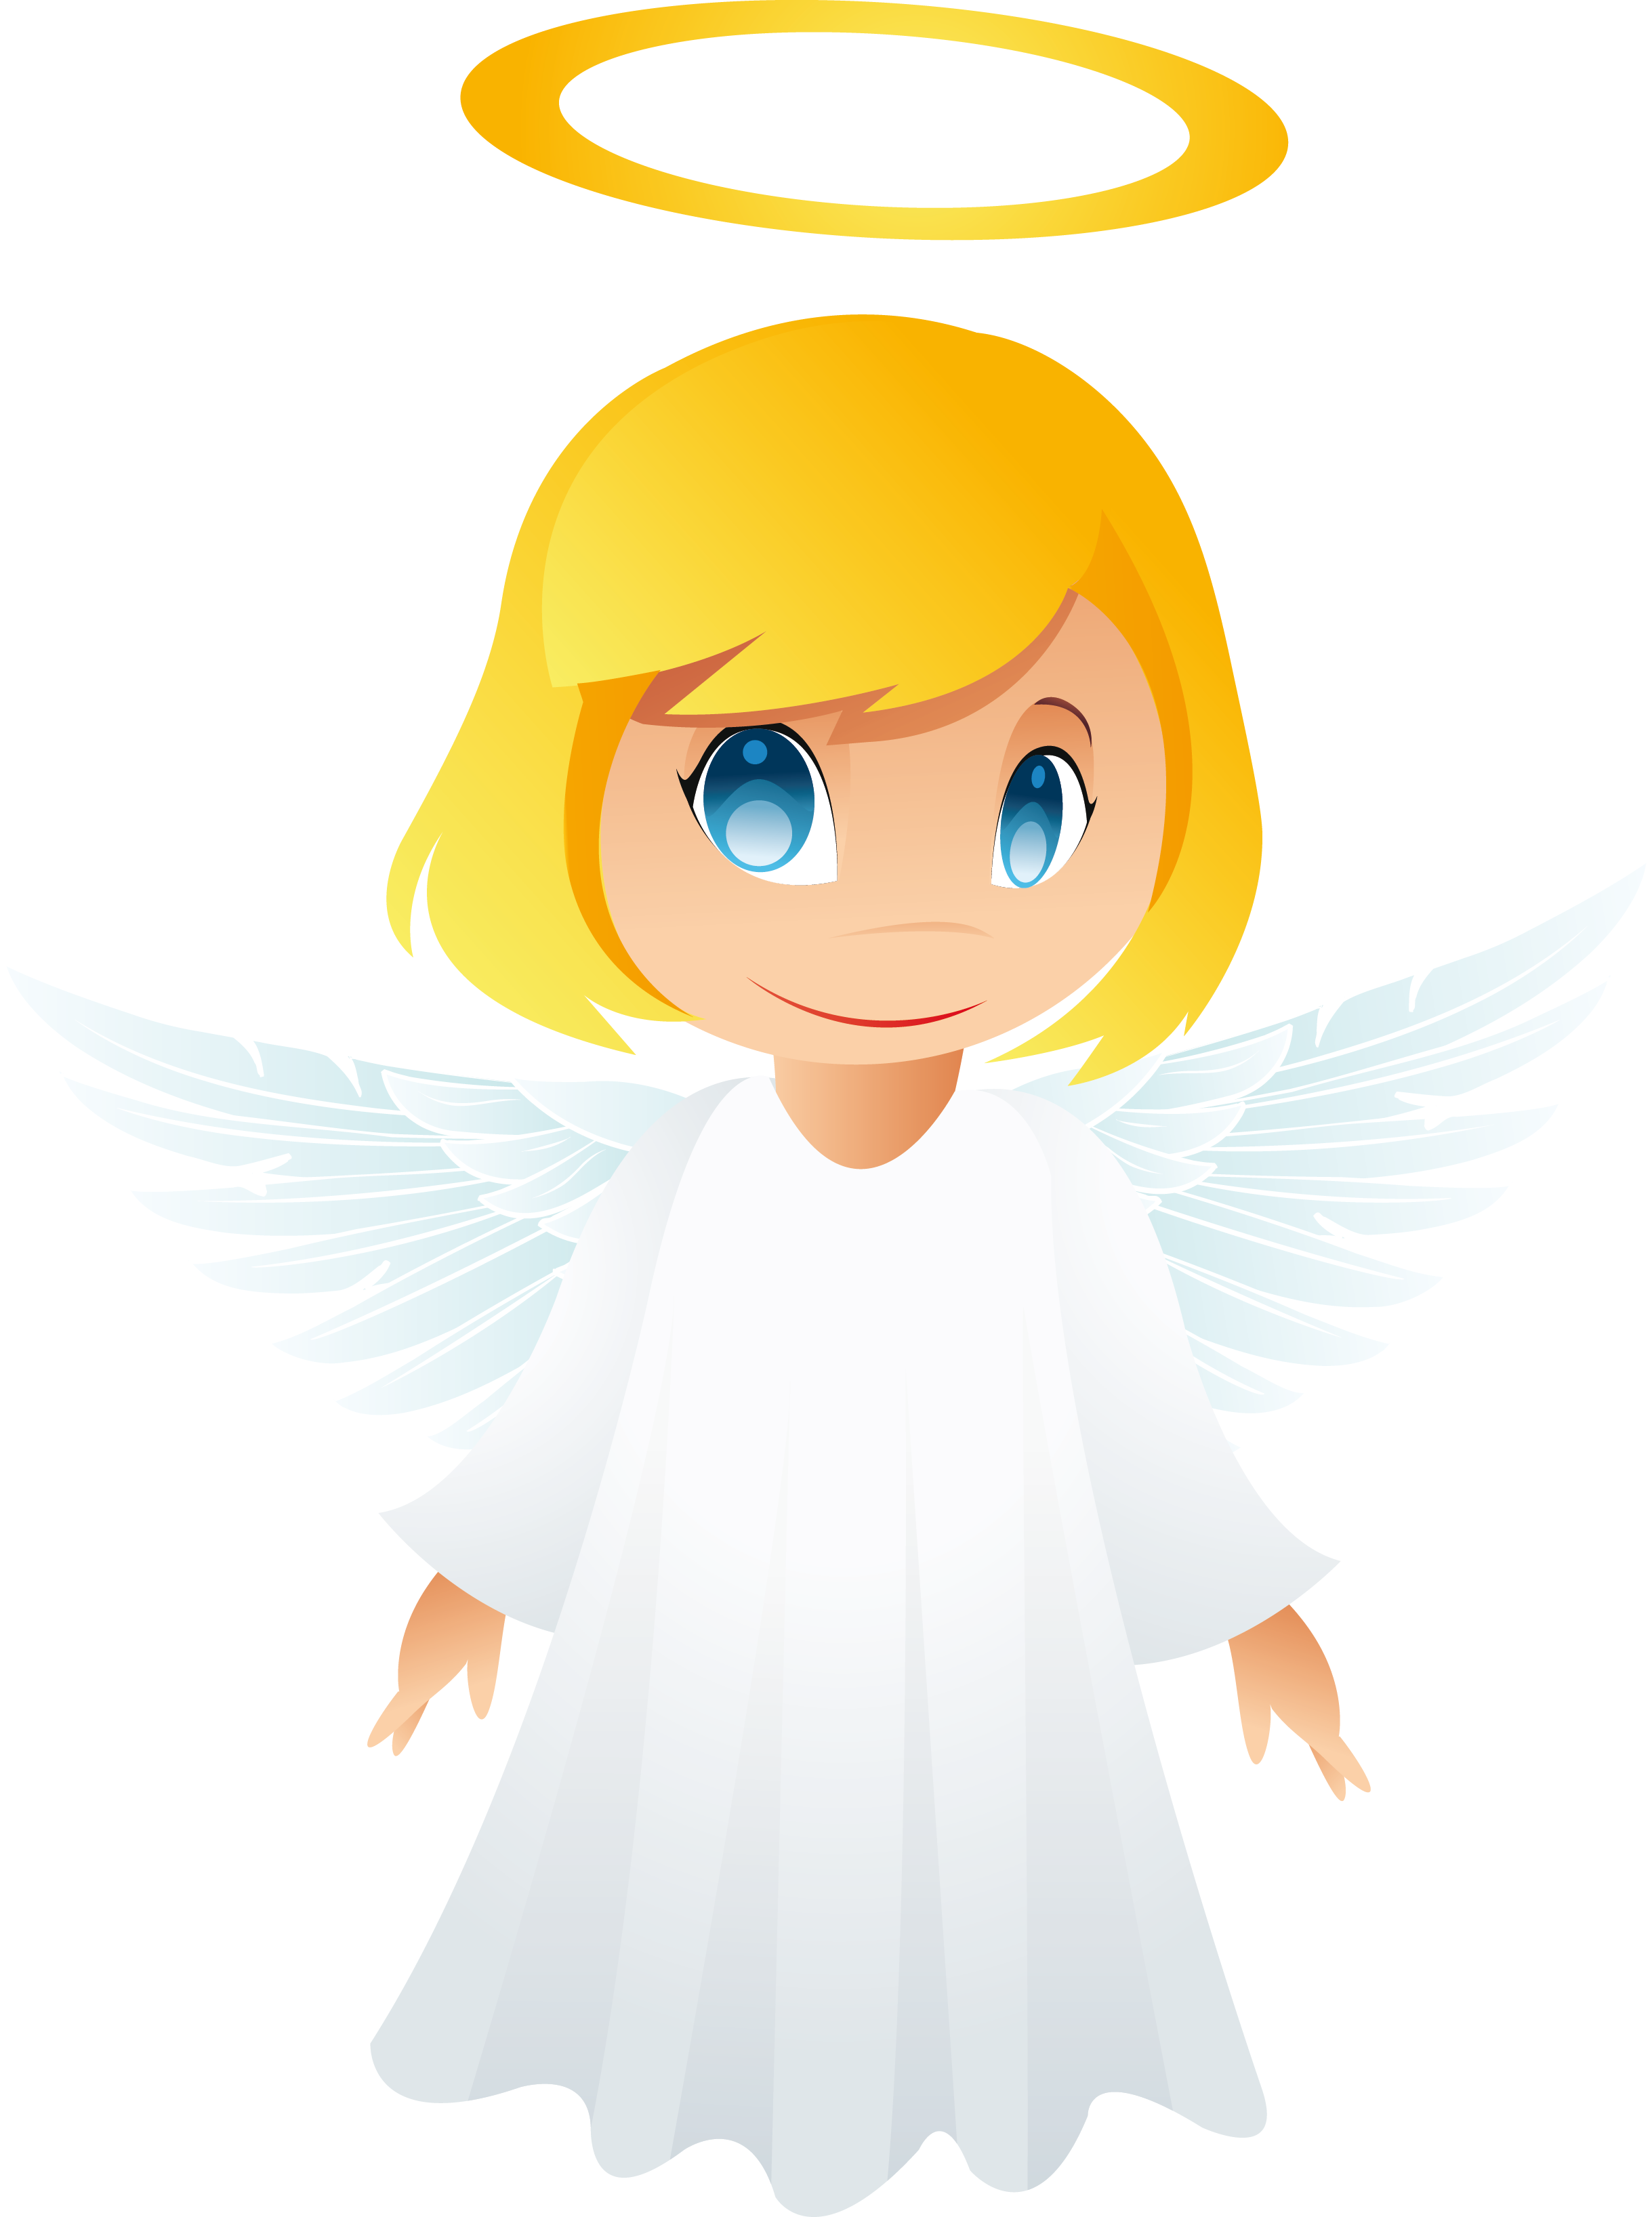 angel clipart free graphics of cherubs and angels the cliparts rh pinterest com angel clipart free angel clipart free